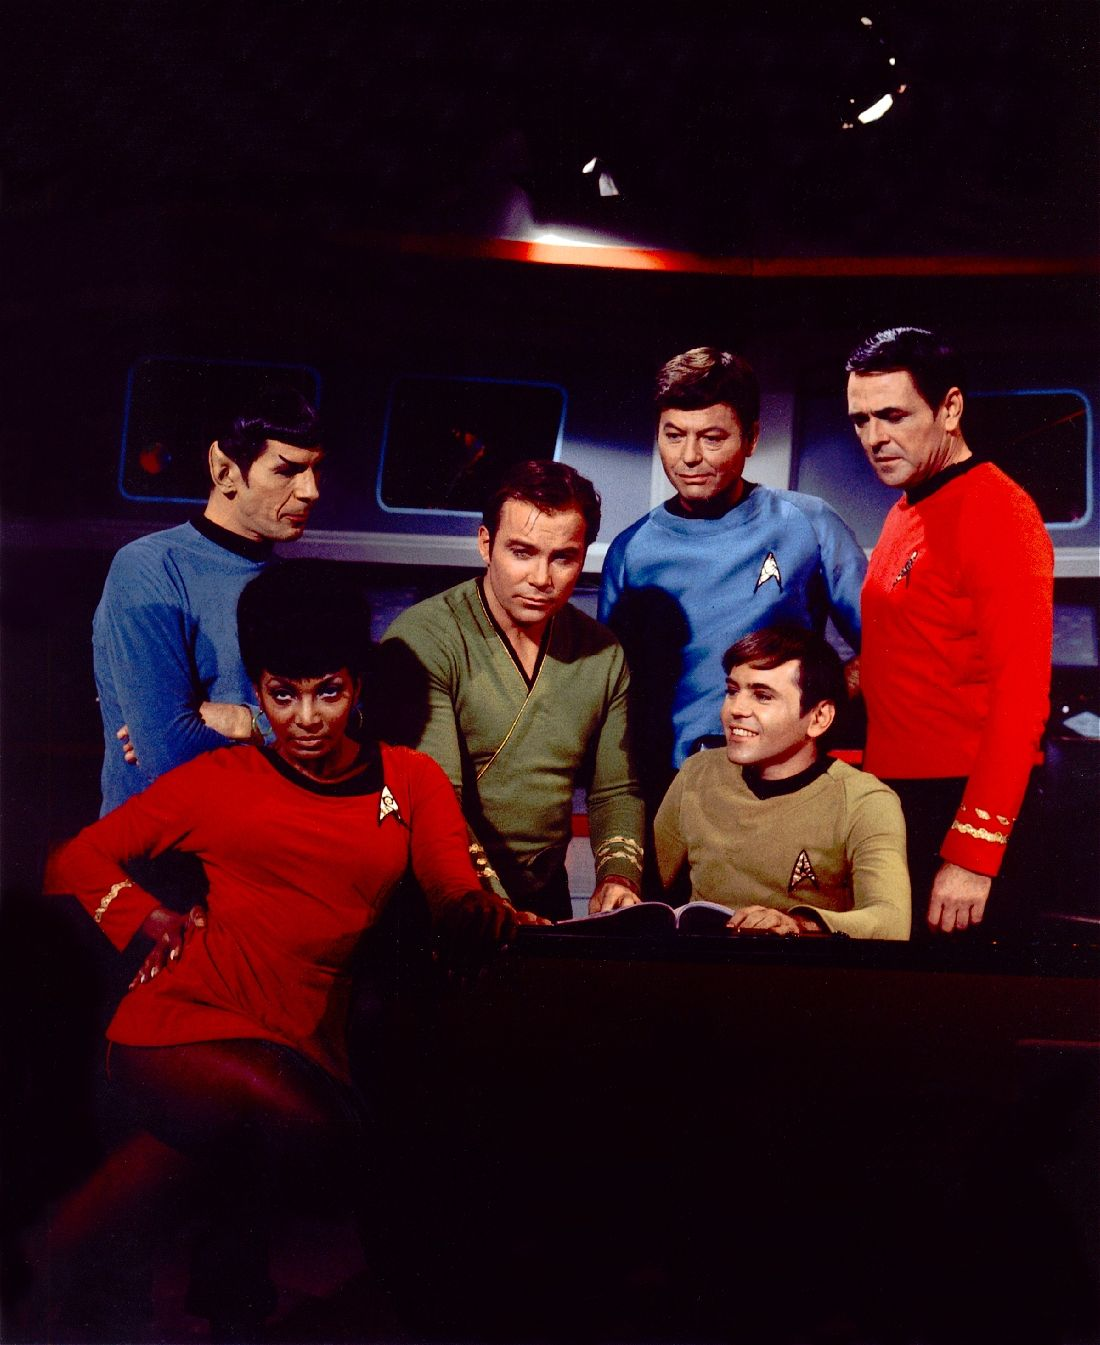 Where S Sulu Uhura Is Too Busy Vamping To Notice In This Unusual